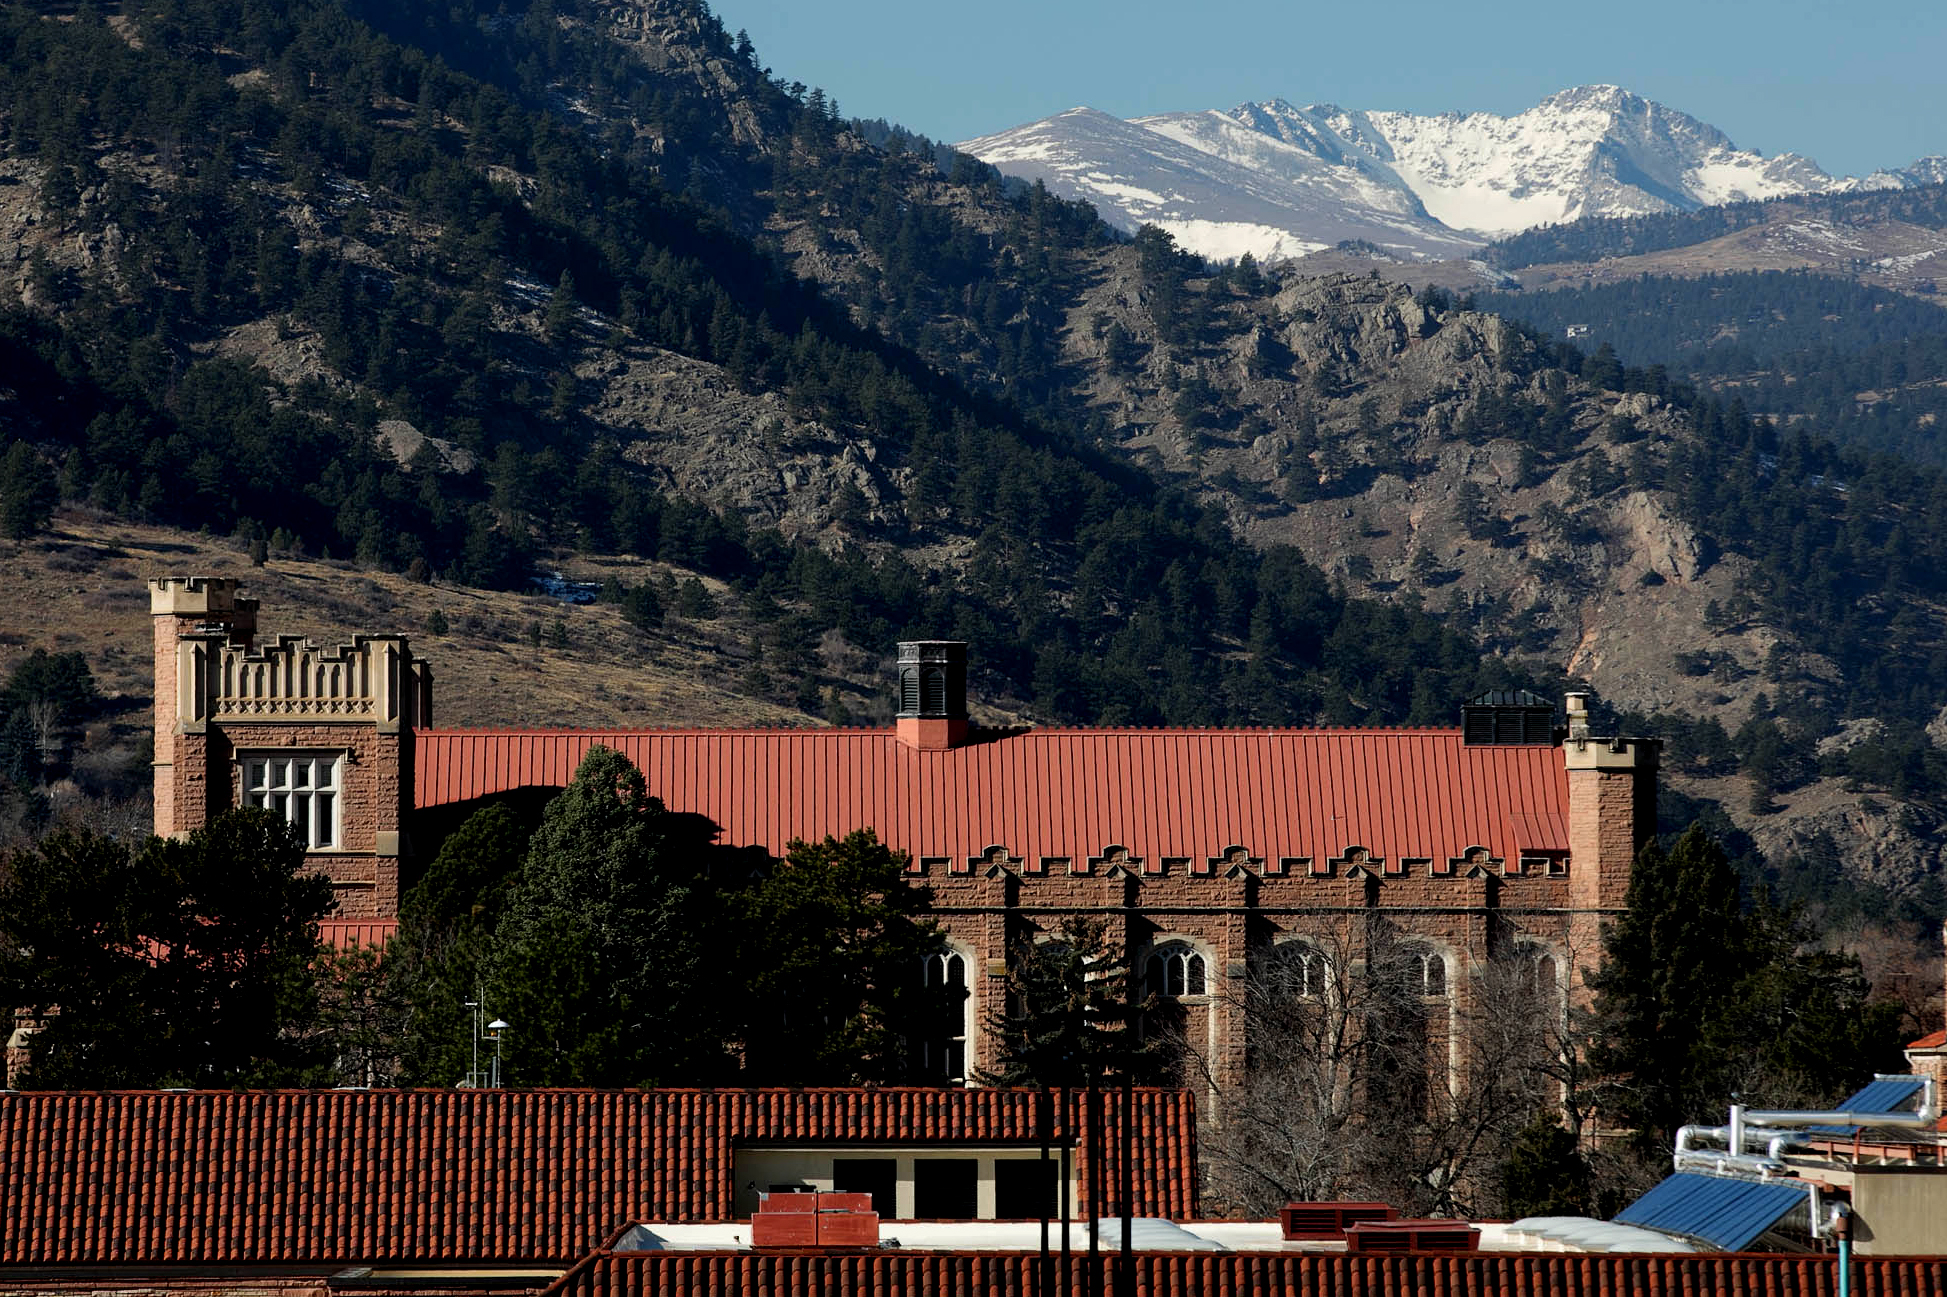 Mackey Auditorium's red tile roof on the CU Boulder campus